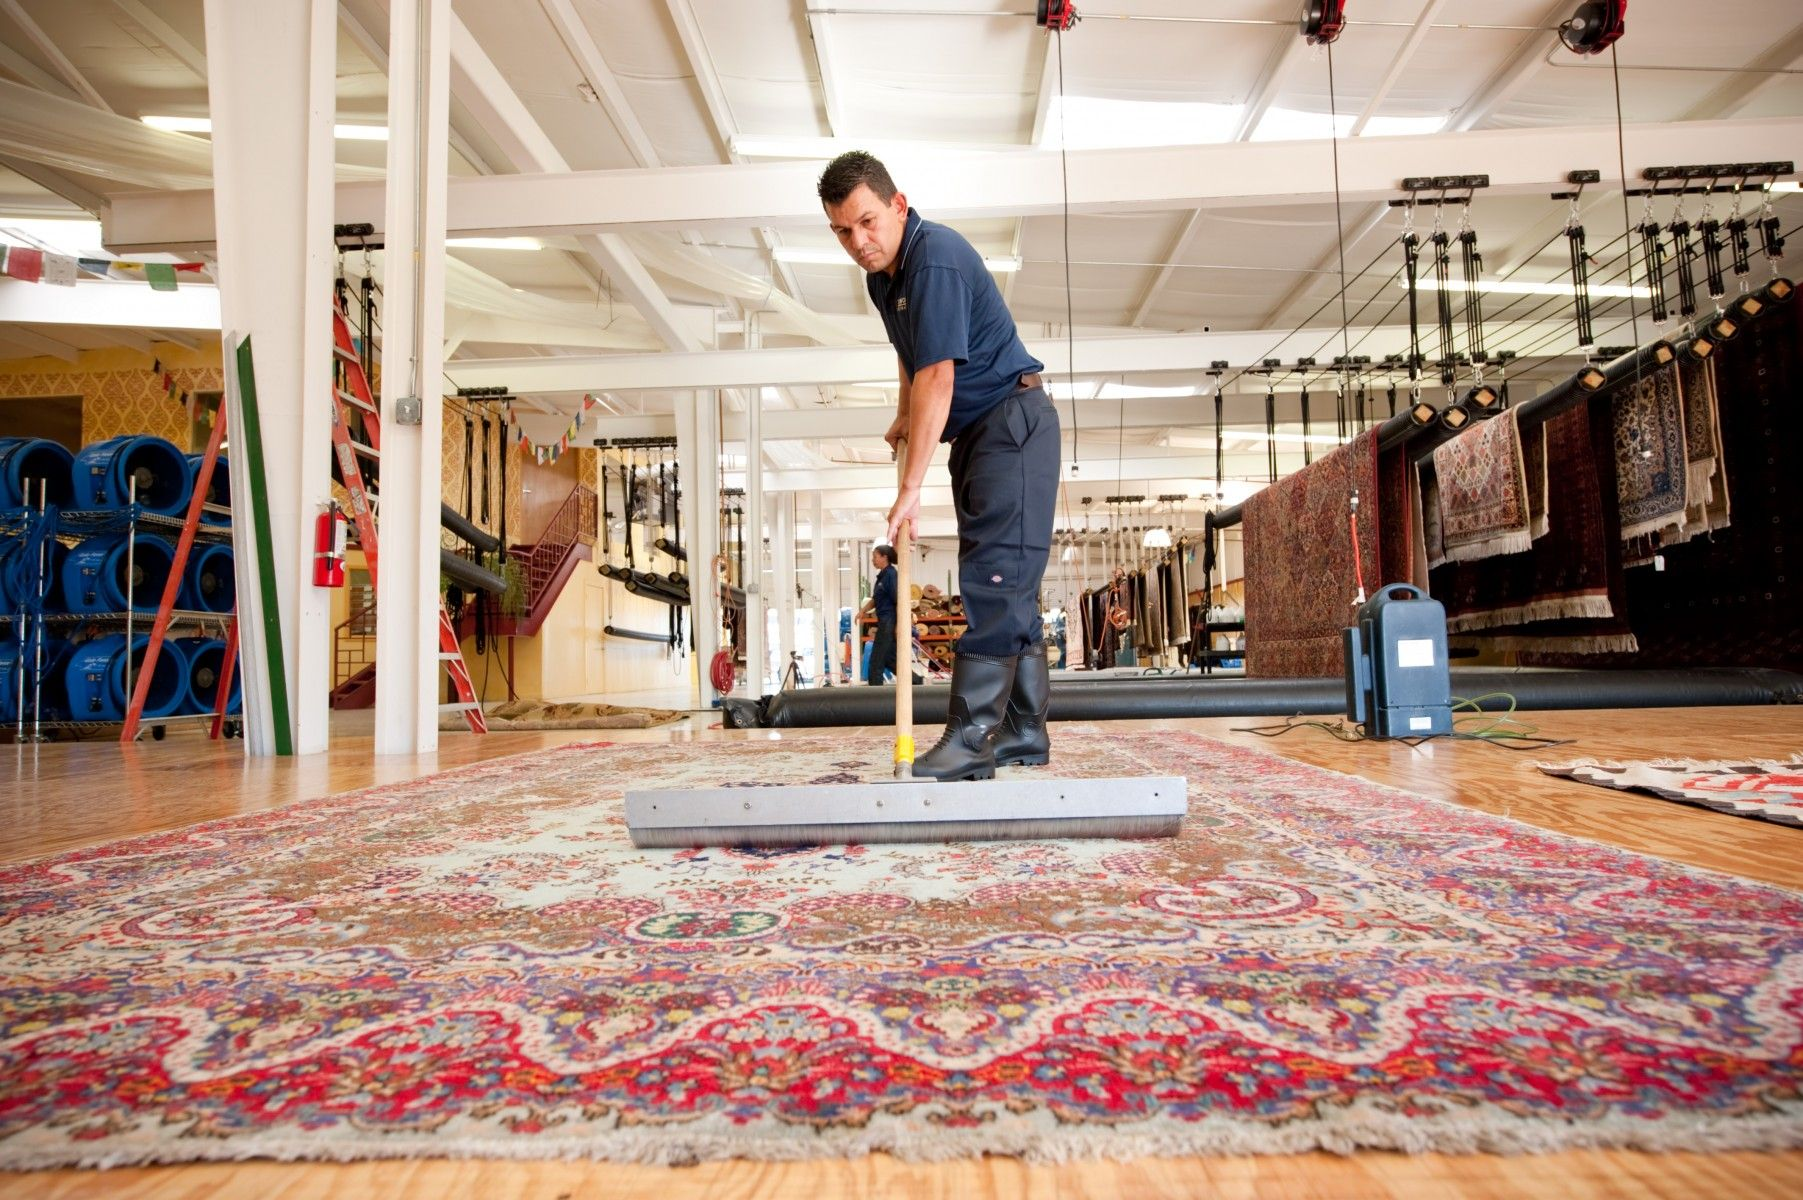 Myom cleaning Services hires only fully trained professionals who specialize steam cleaning of carpet. #SteamCleaning Visit on: http://goo.gl/DoLj2o